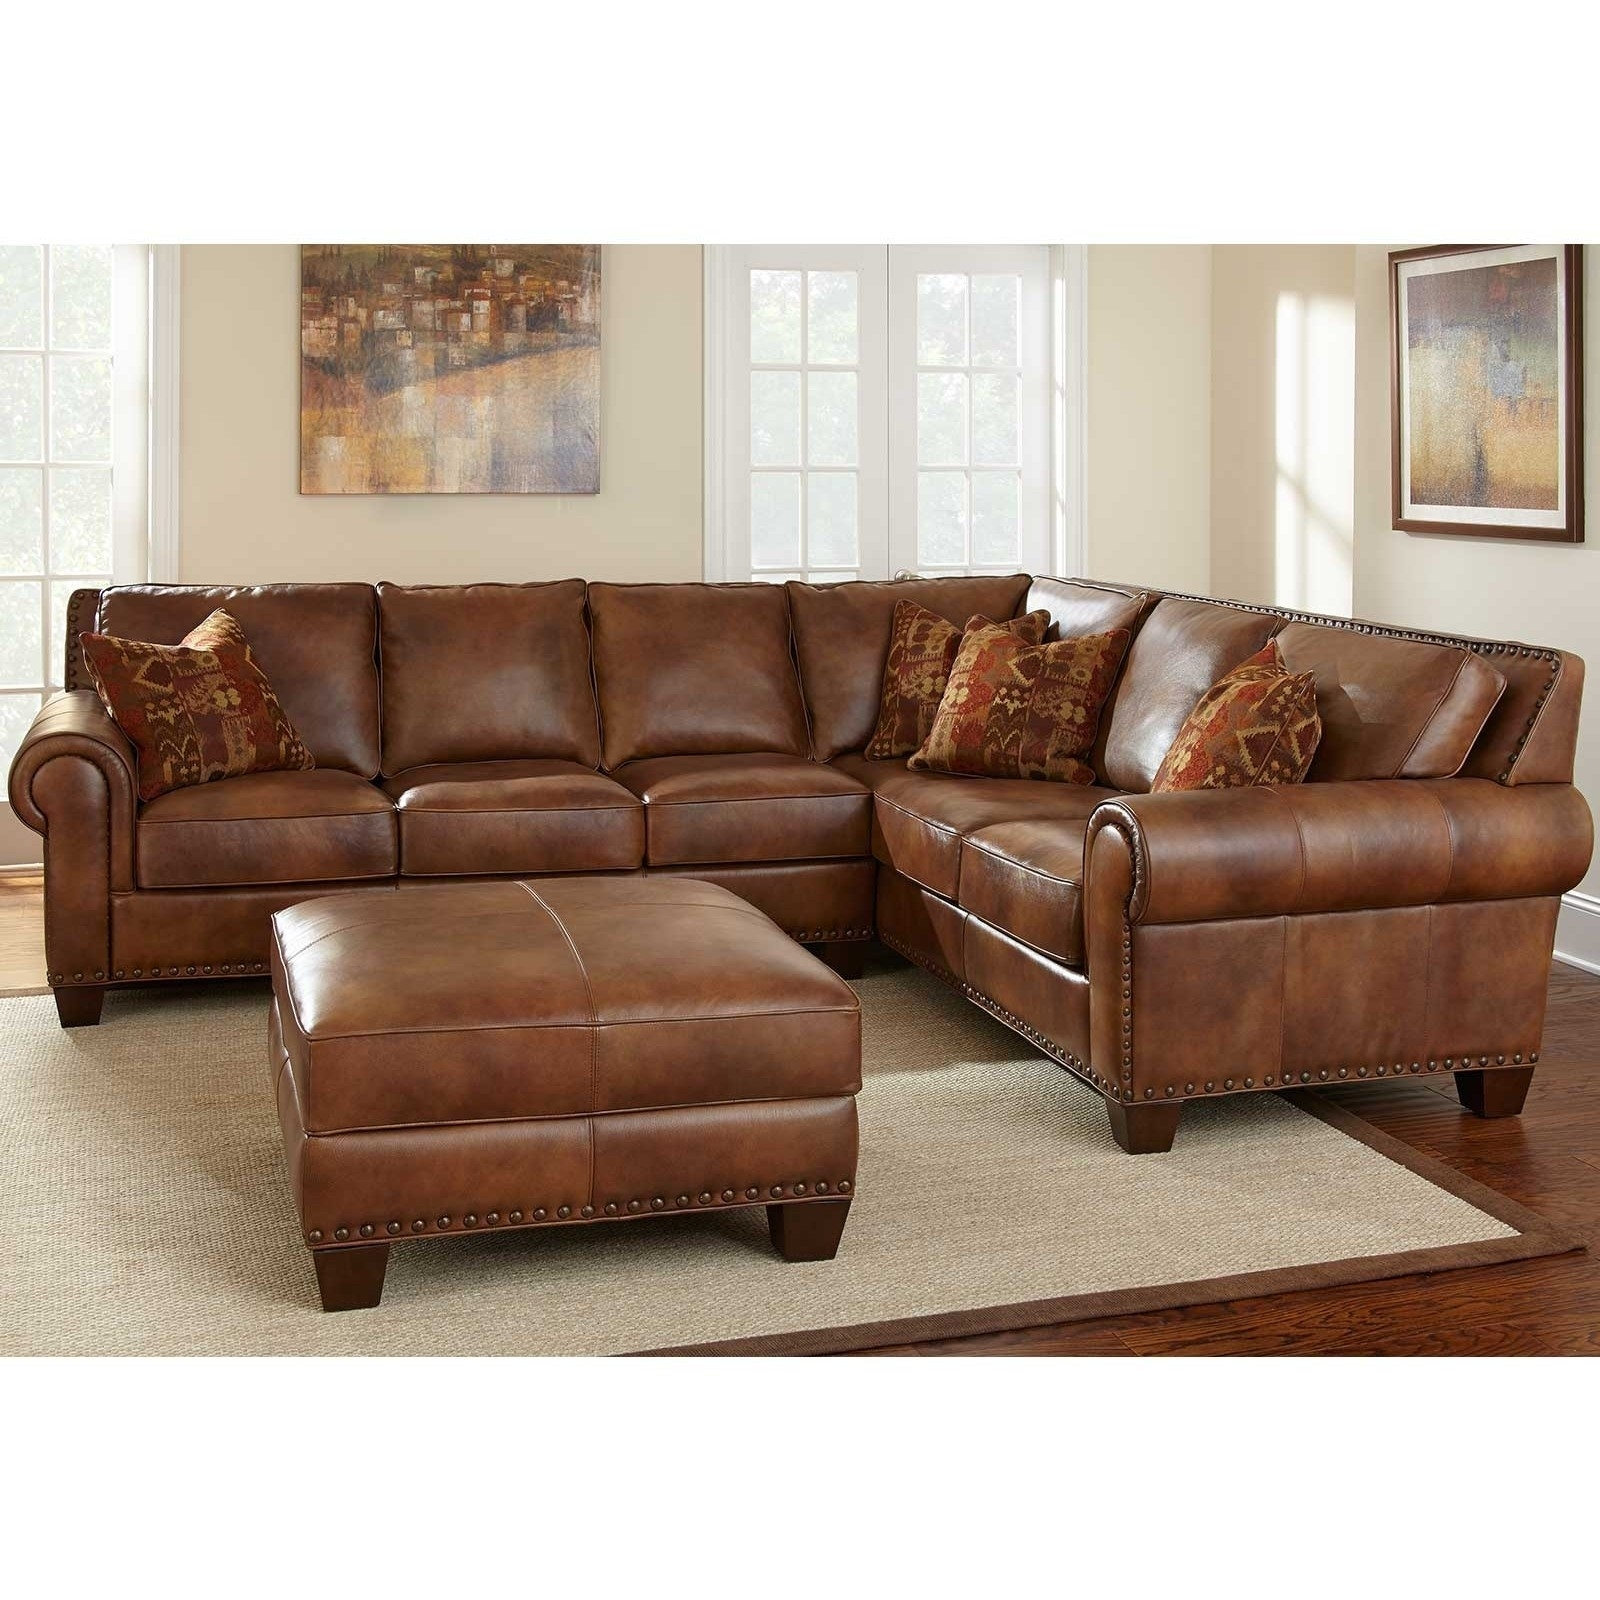 Sectional Sofa Design: High End Leather Sectional Sofas For Sale Intended For On Sale Sectional Sofas (View 6 of 10)